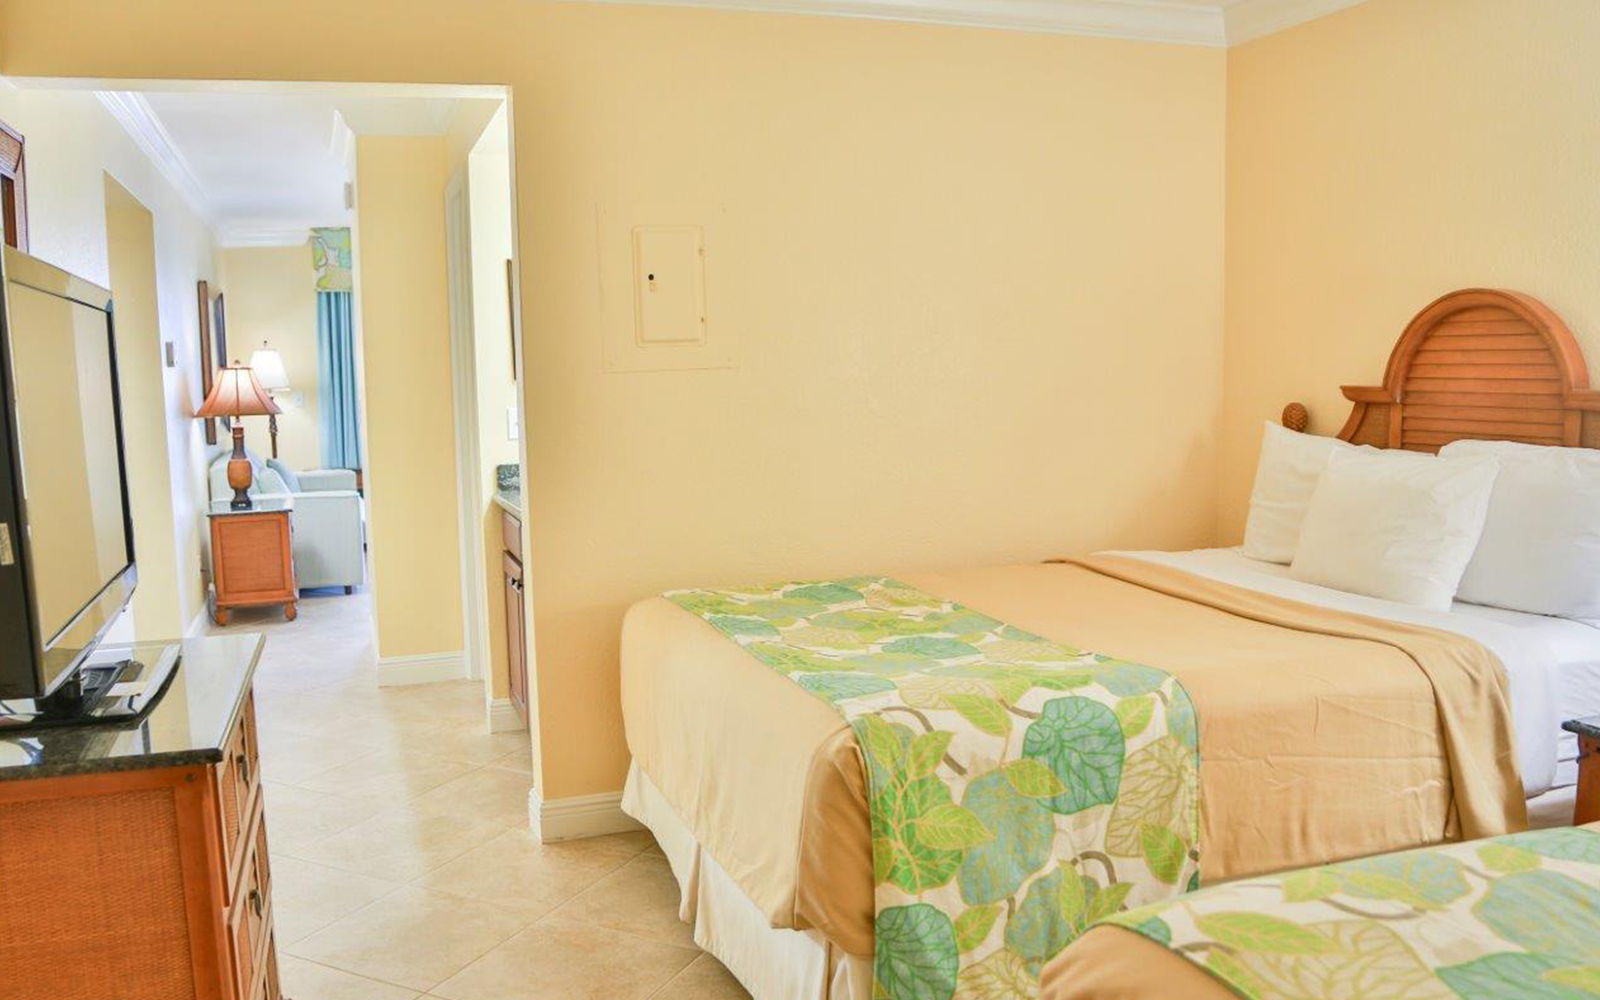 Gulf-front guest rooms and suites in Fort Myers Beach, FL